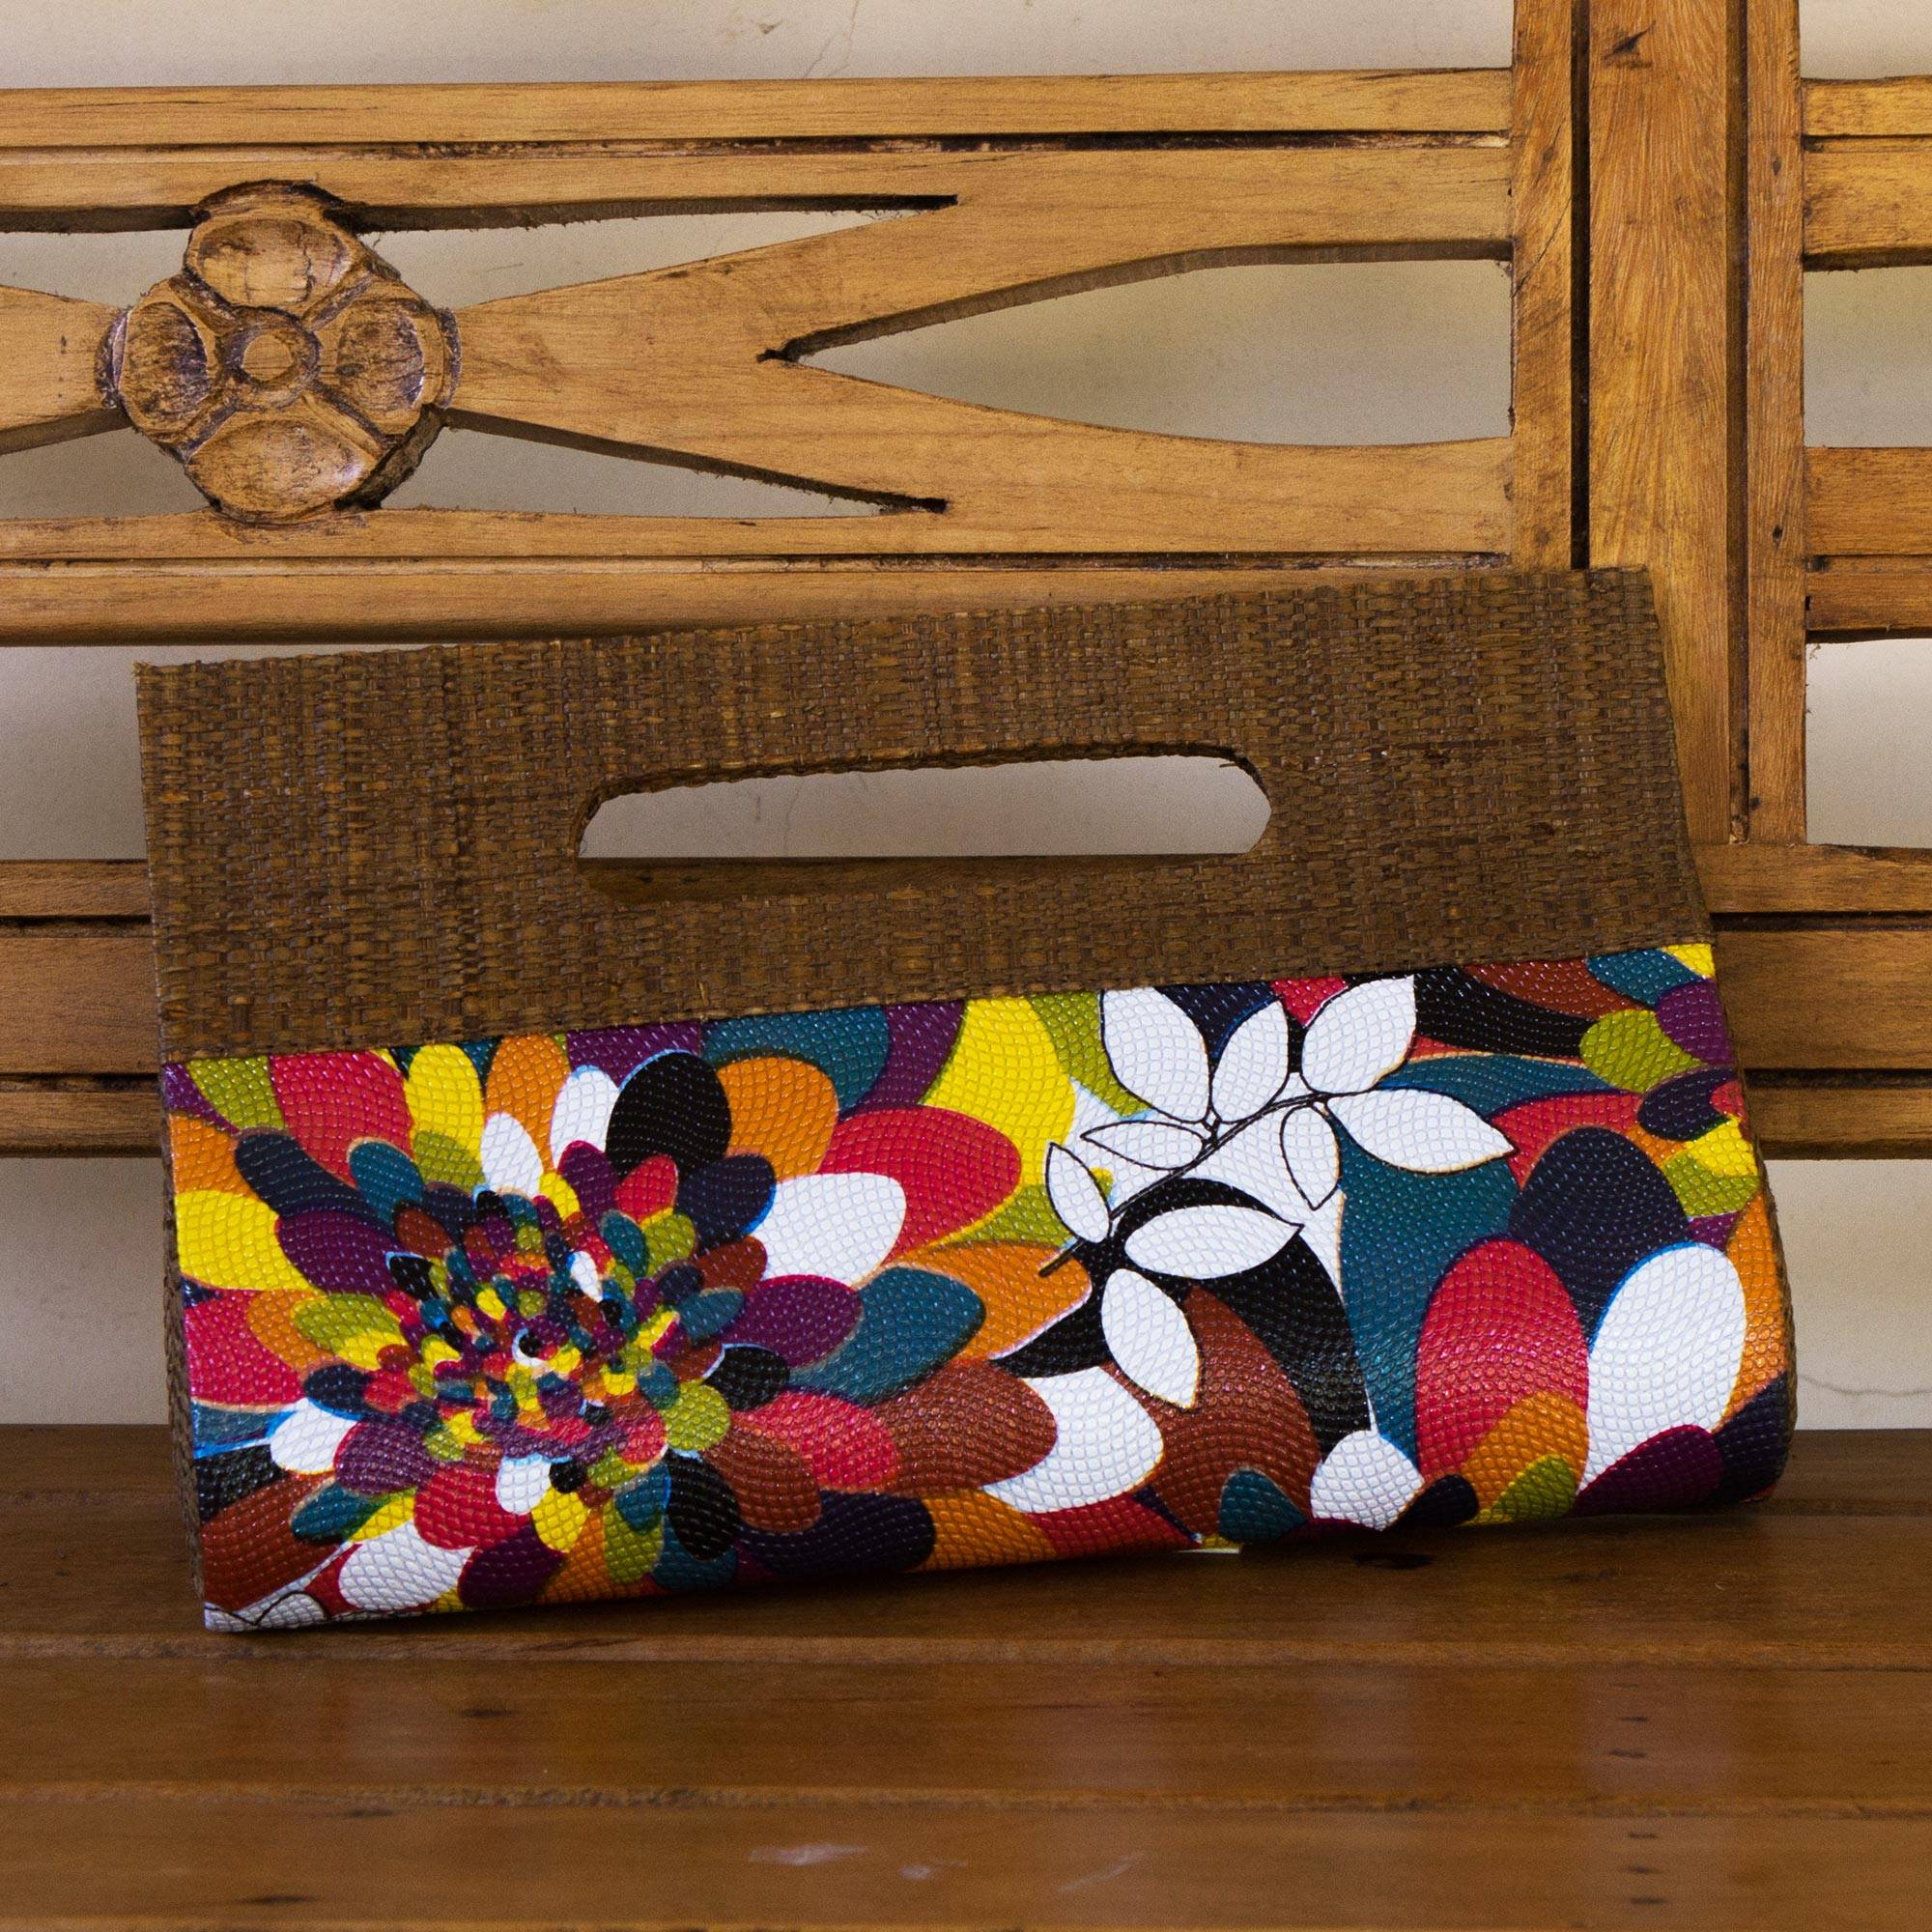 Colorful Handcrafted Palm Leaf Handbag from Brazil, 'Psychedelic Jungle'